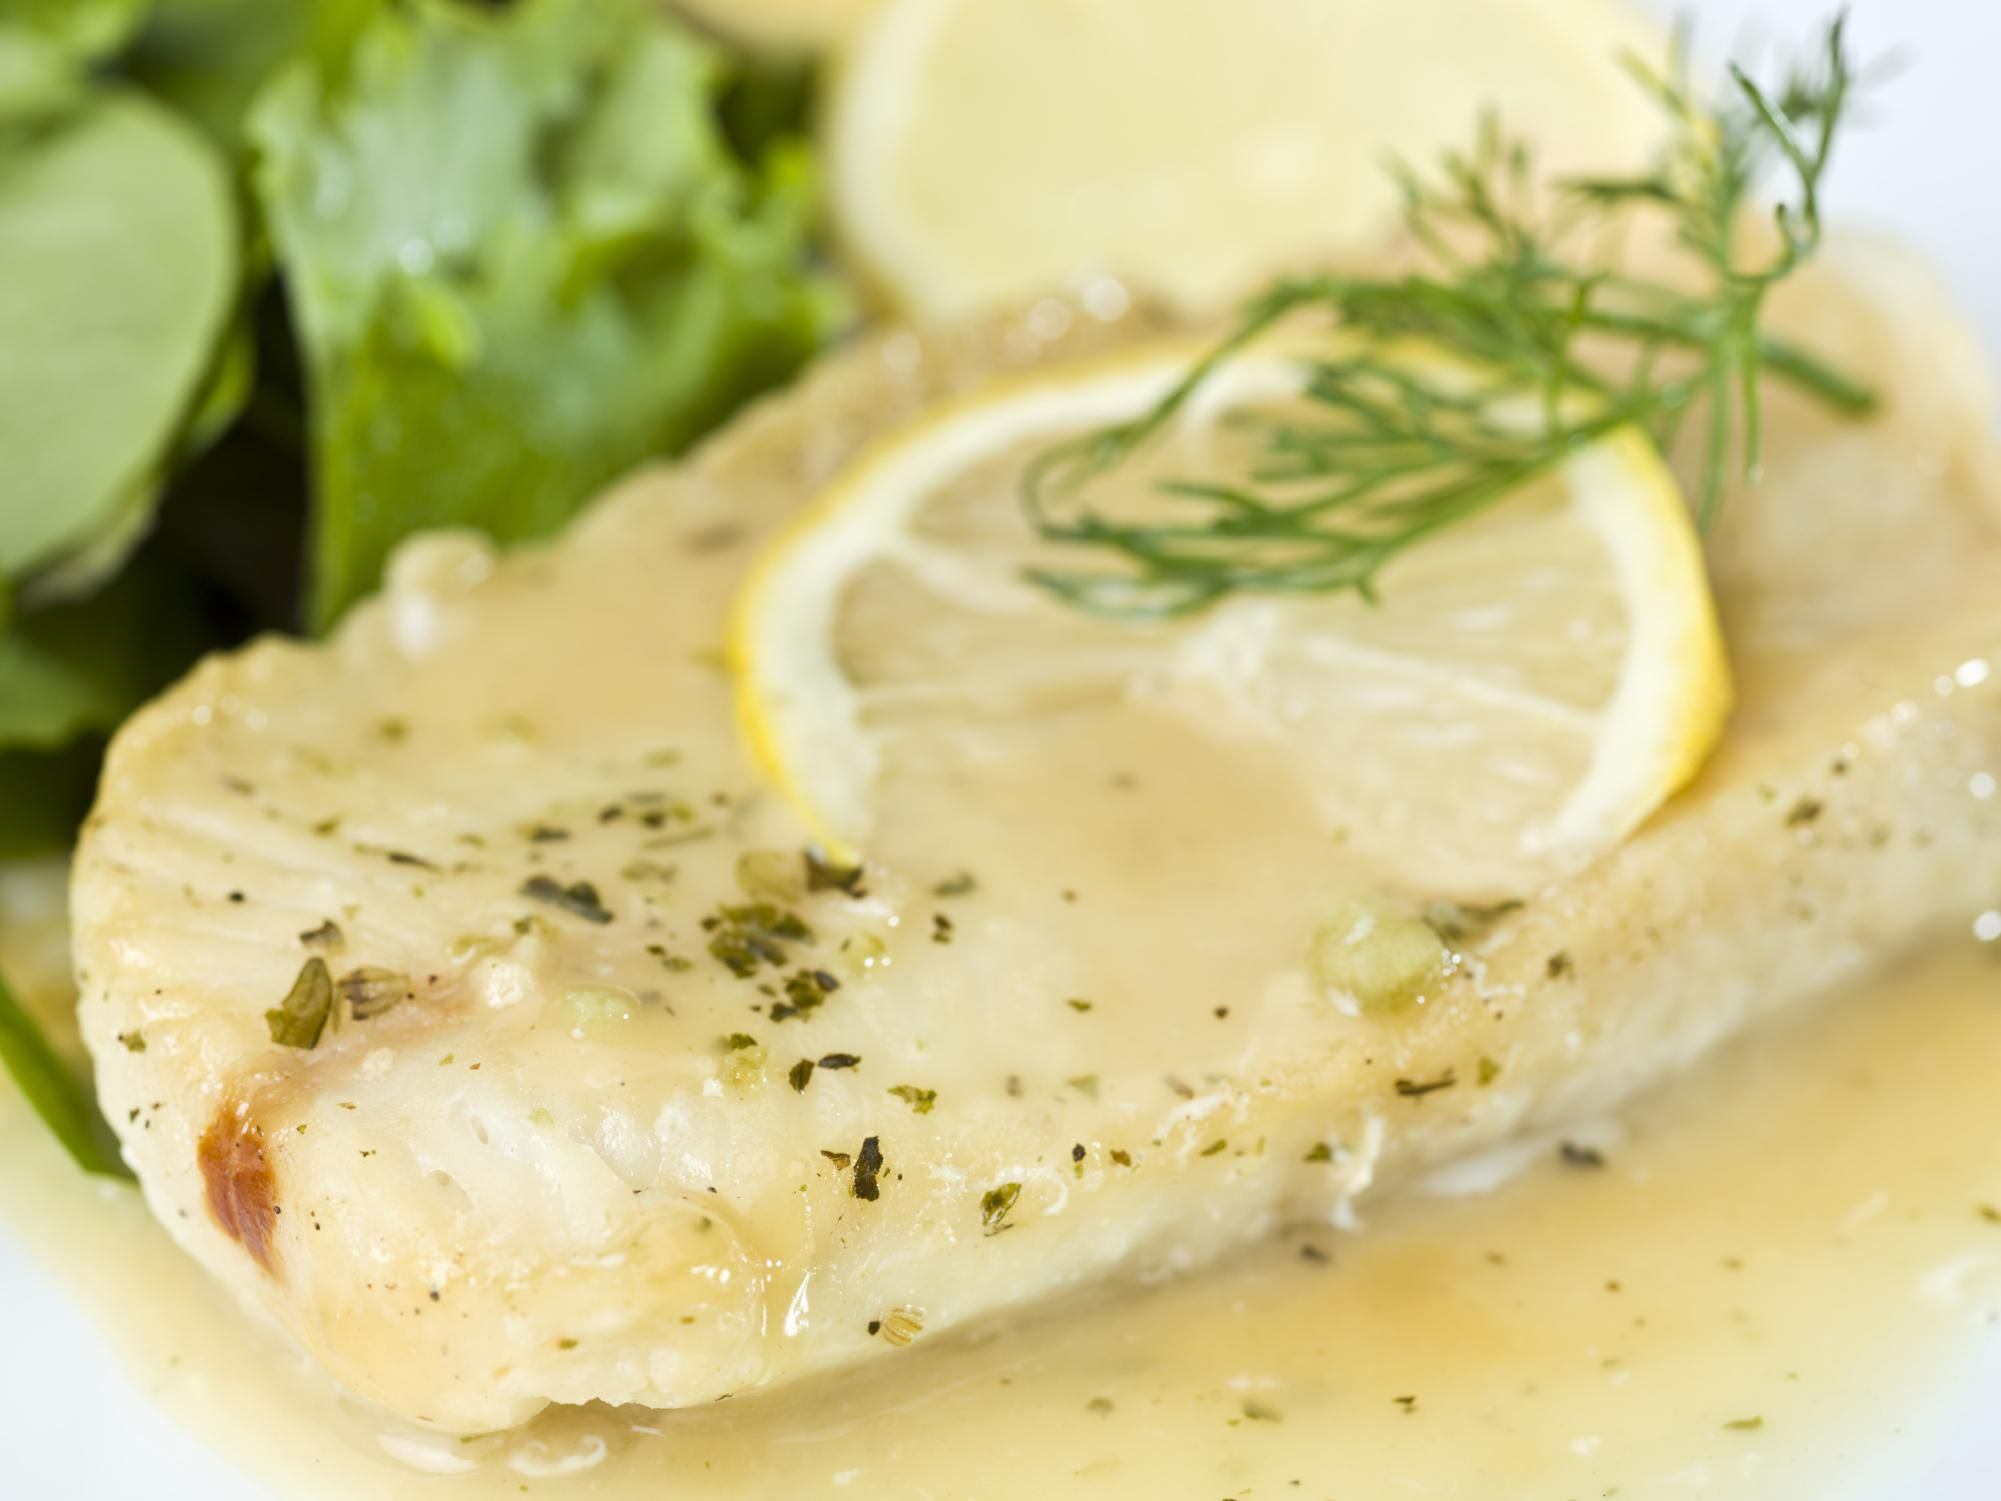 Lemon beurre blanc sauce recipe french food for Cooking with fish sauce